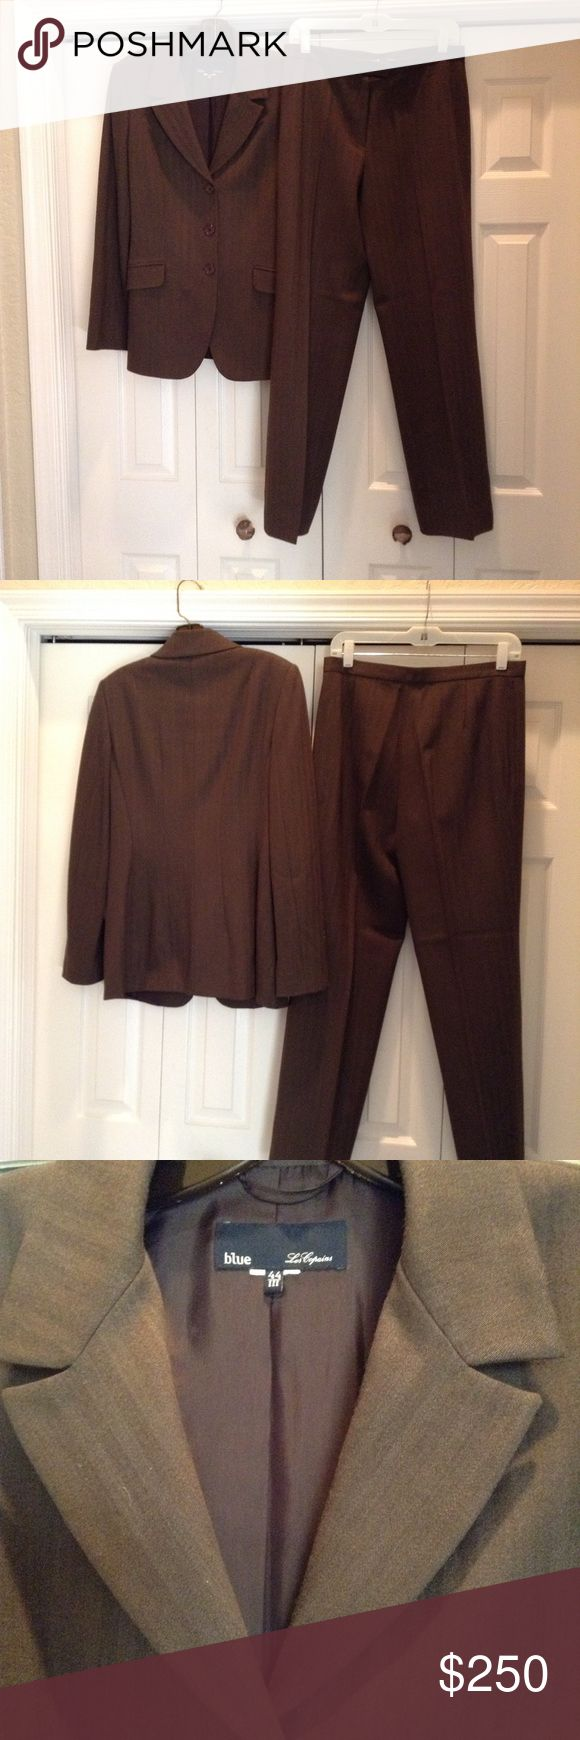 blue Les Copains Brown Suit Absolutely unbelievable brown on brown striped beautiful wool suit, jacket has pockets, three button front, pants have front zip and hook enclosure, absolutely exquisite. blue Les Copains Other